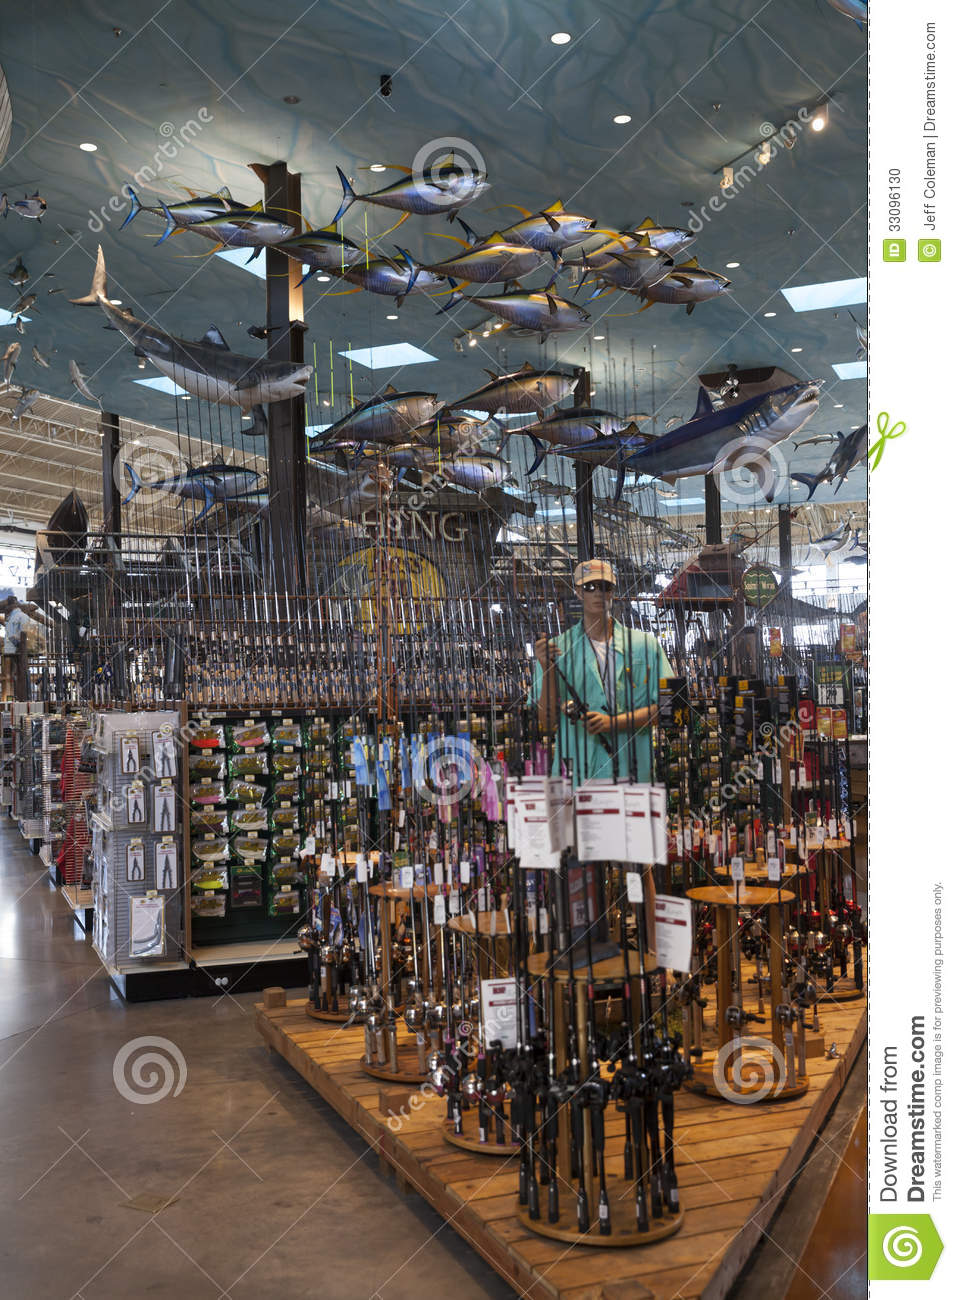 Bass pro shops springfield missouri ceiling editorial for Bass pro shop fishing